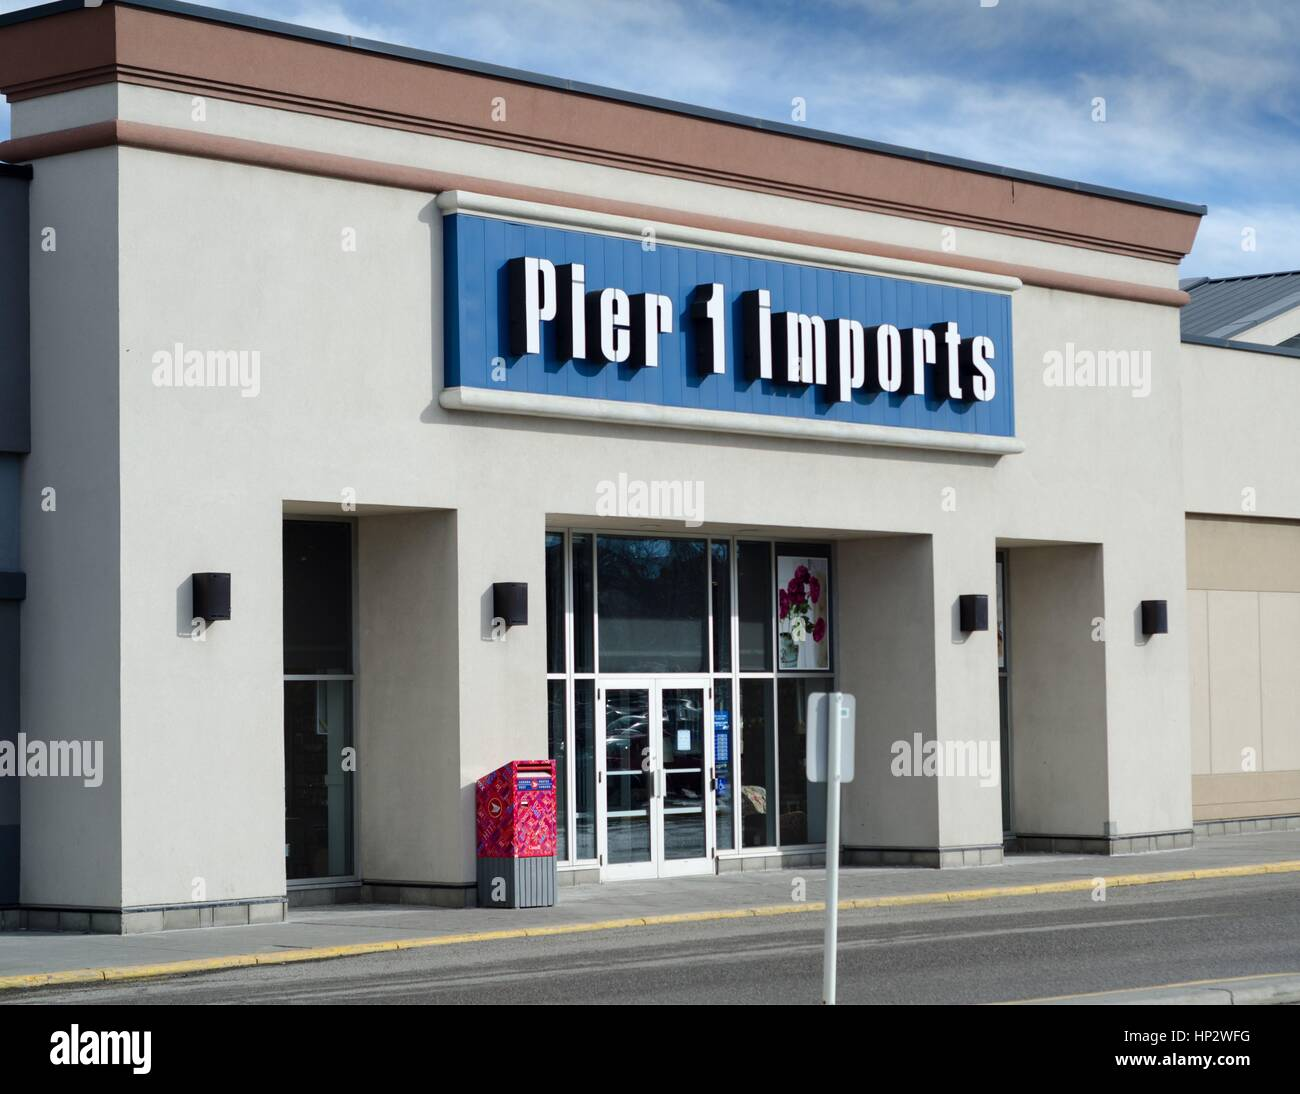 A Pier 1 Imports retail store in Calgary, Alberta, Canada. - Stock Image